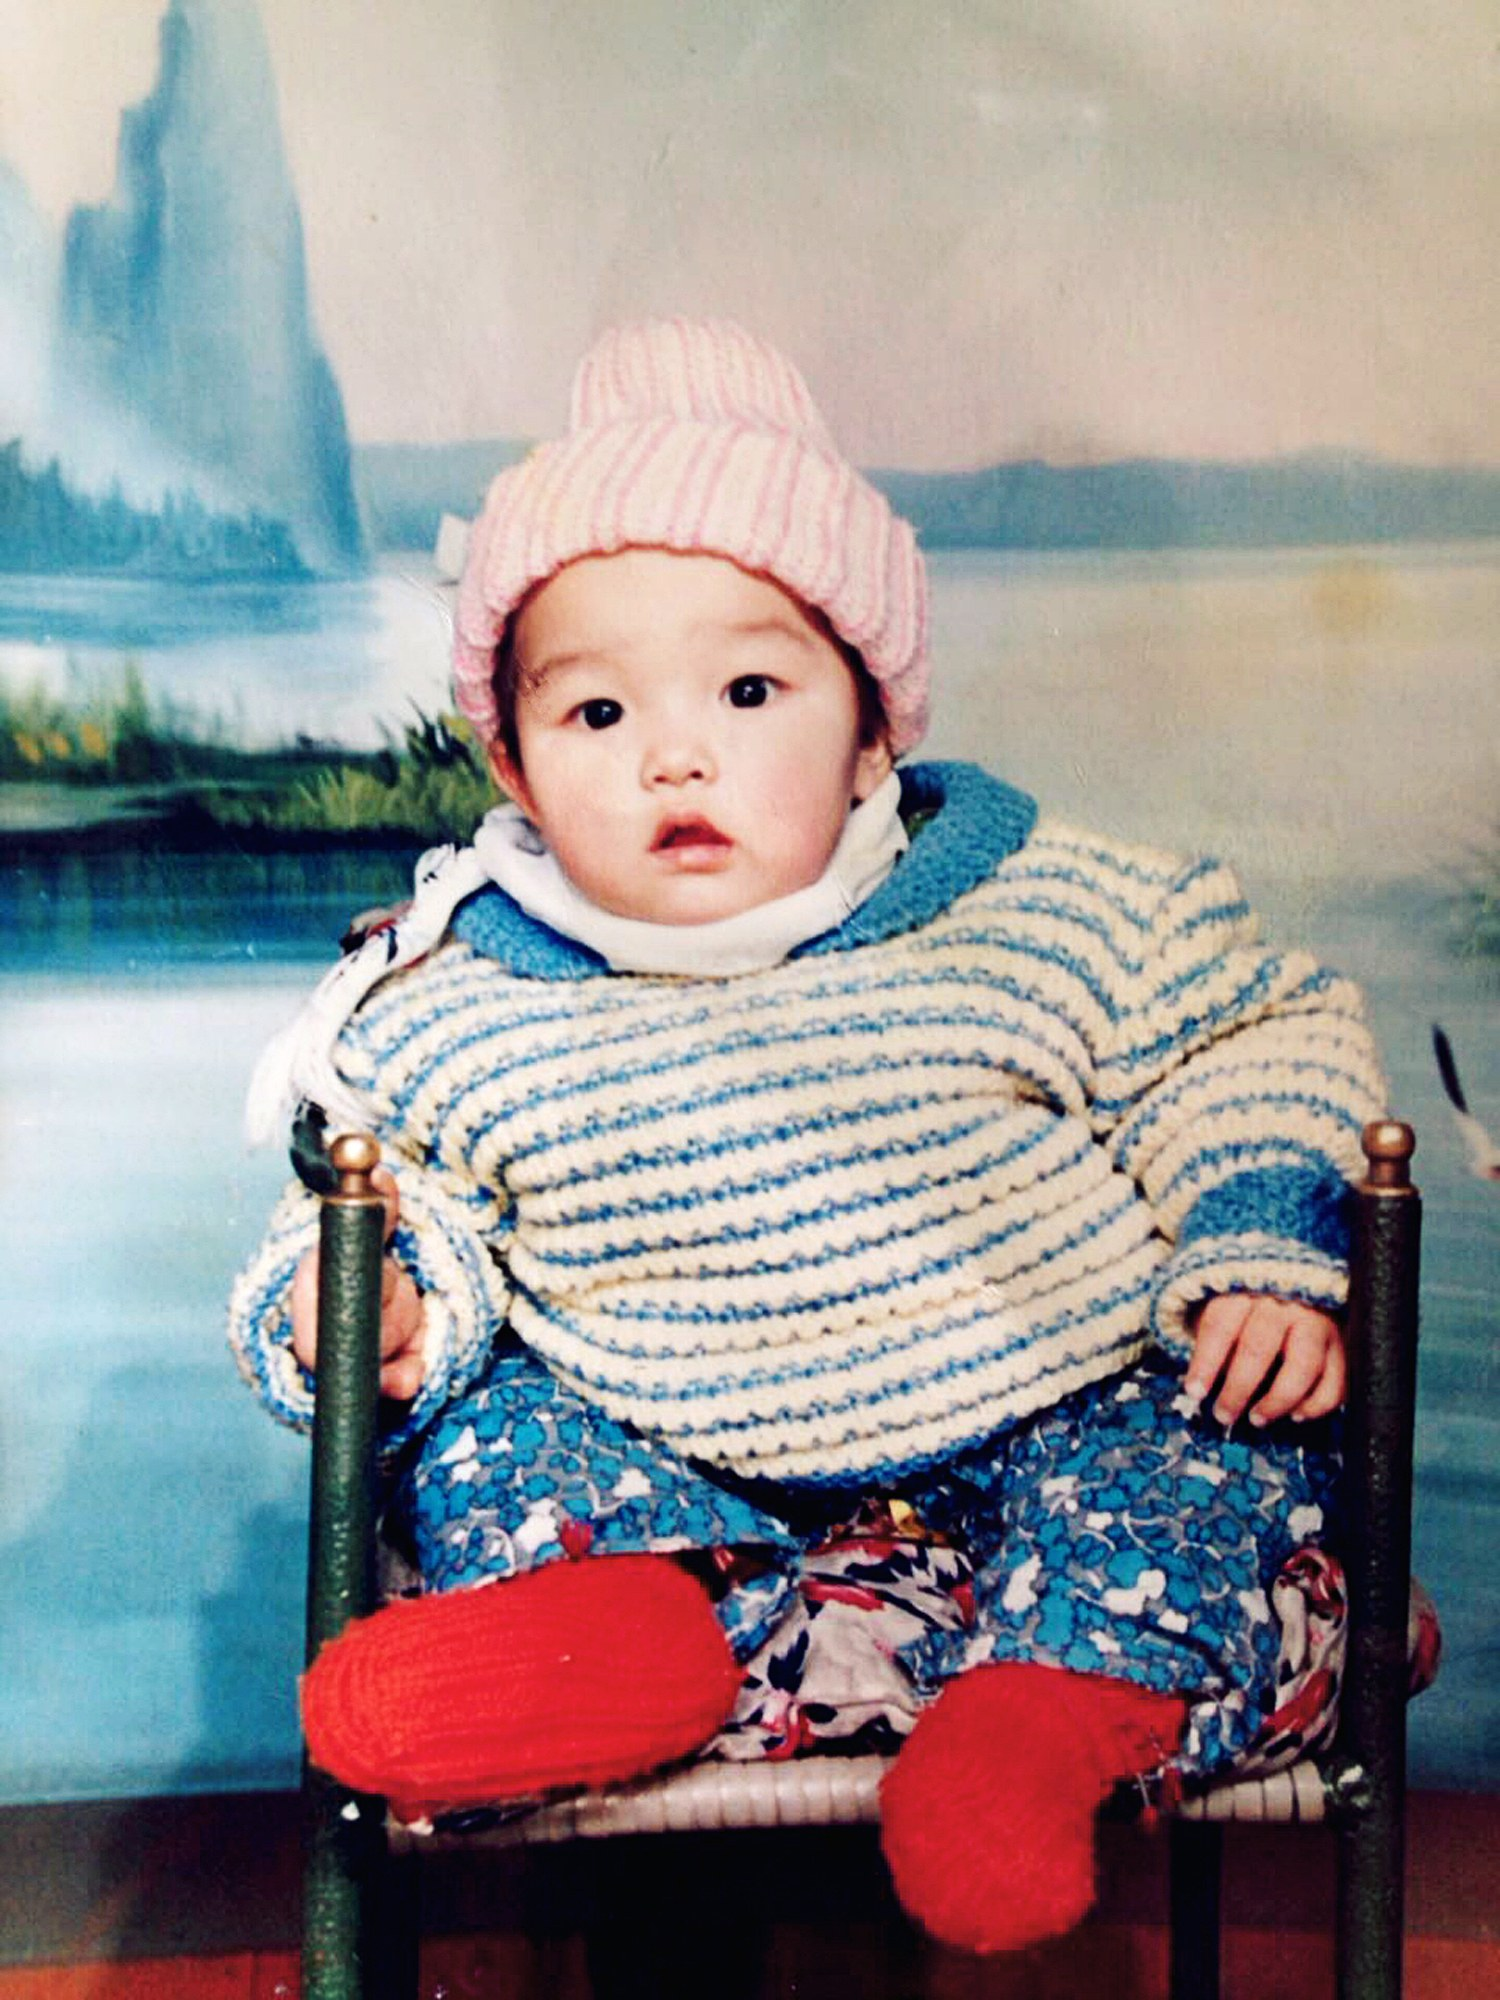 Fei Fei Sun childhood photo two at Vogue.com